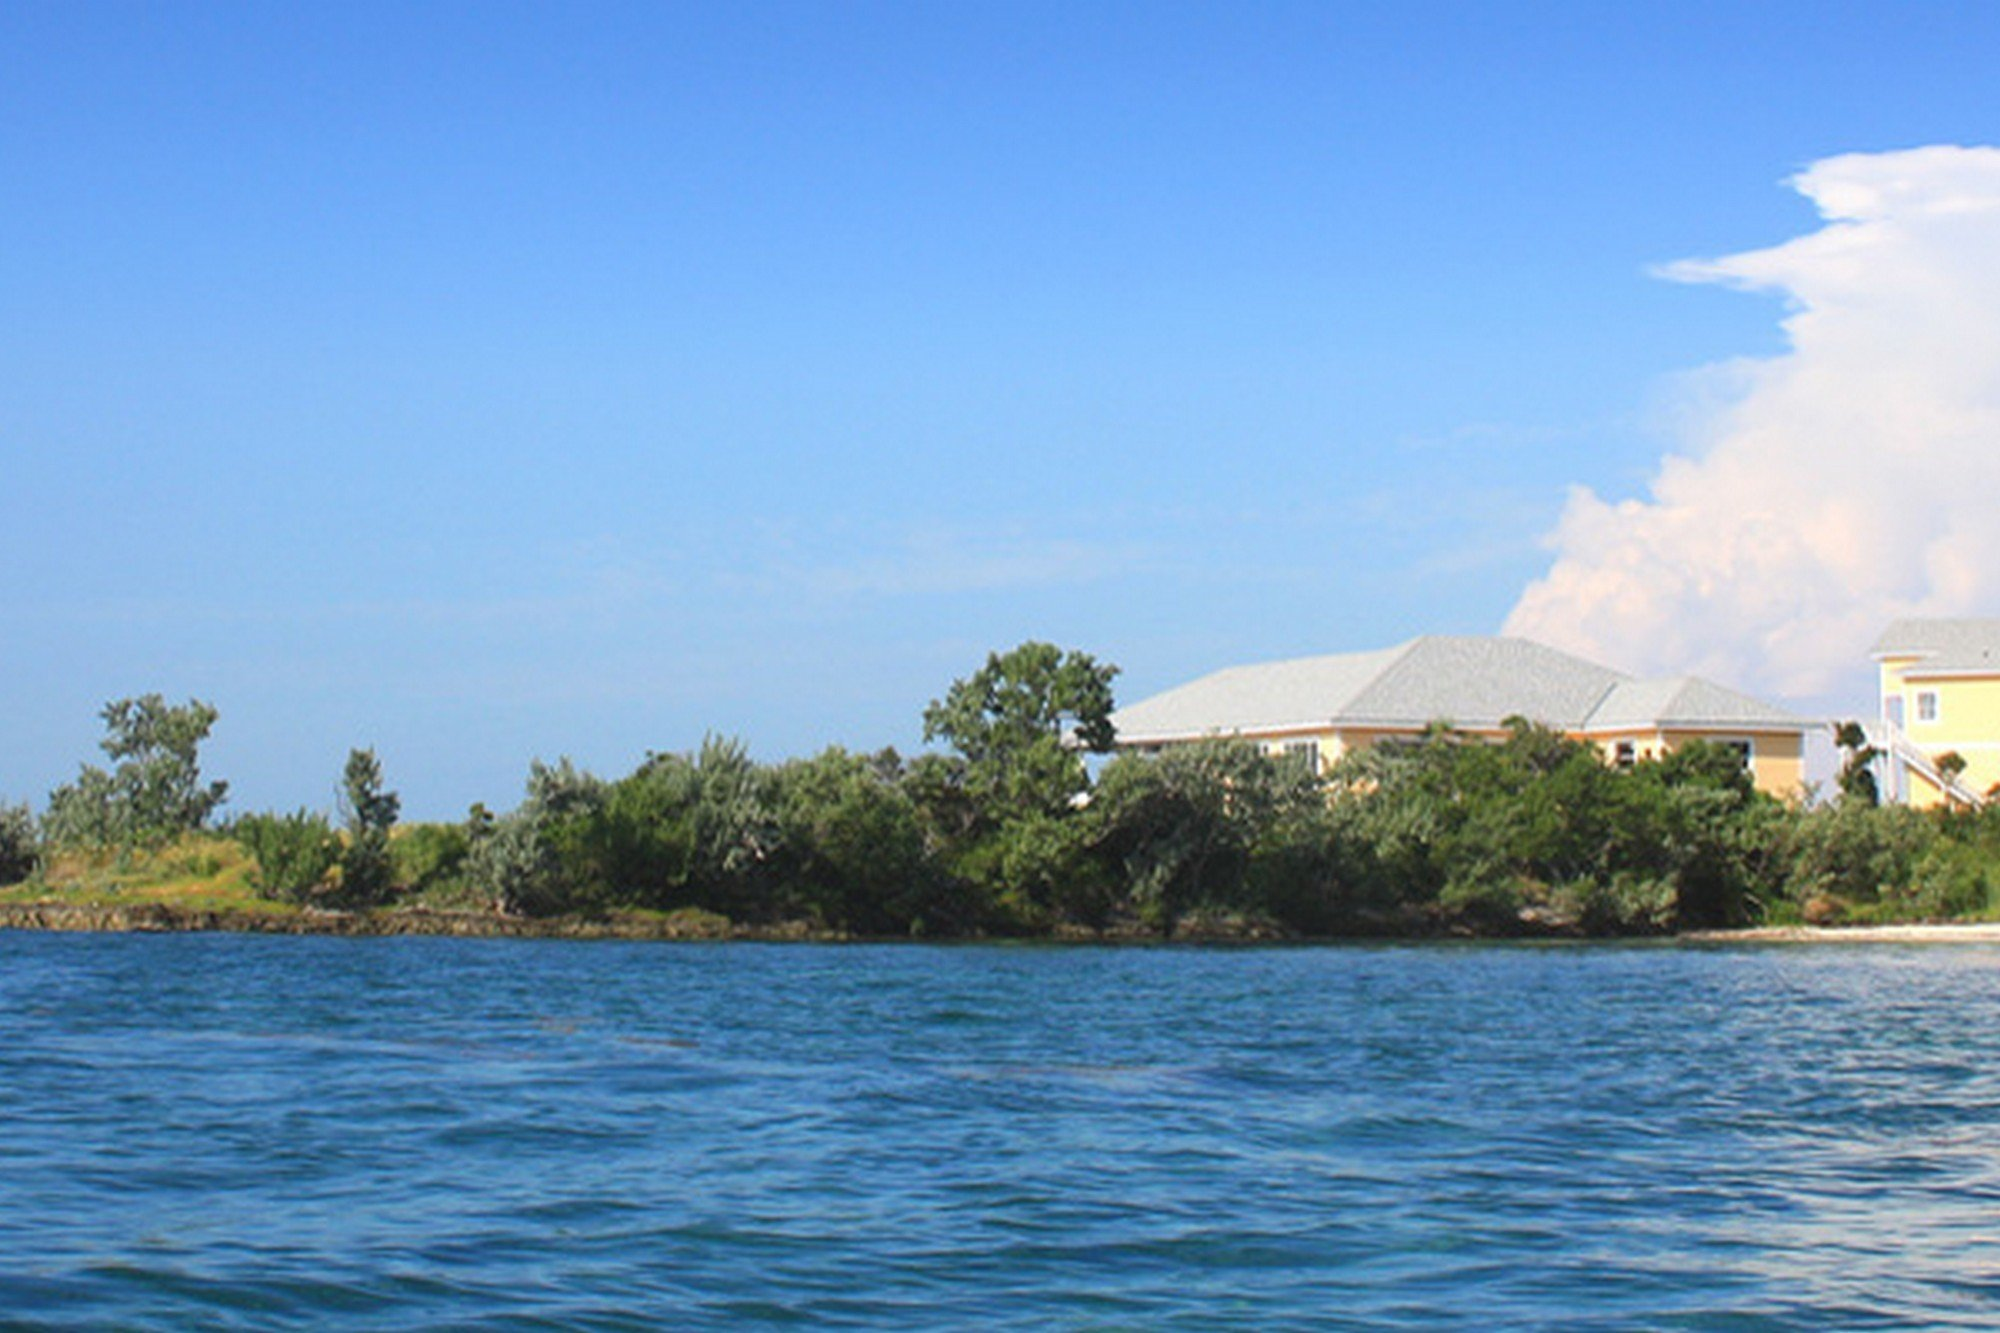 Private Island in The Bahamas 1